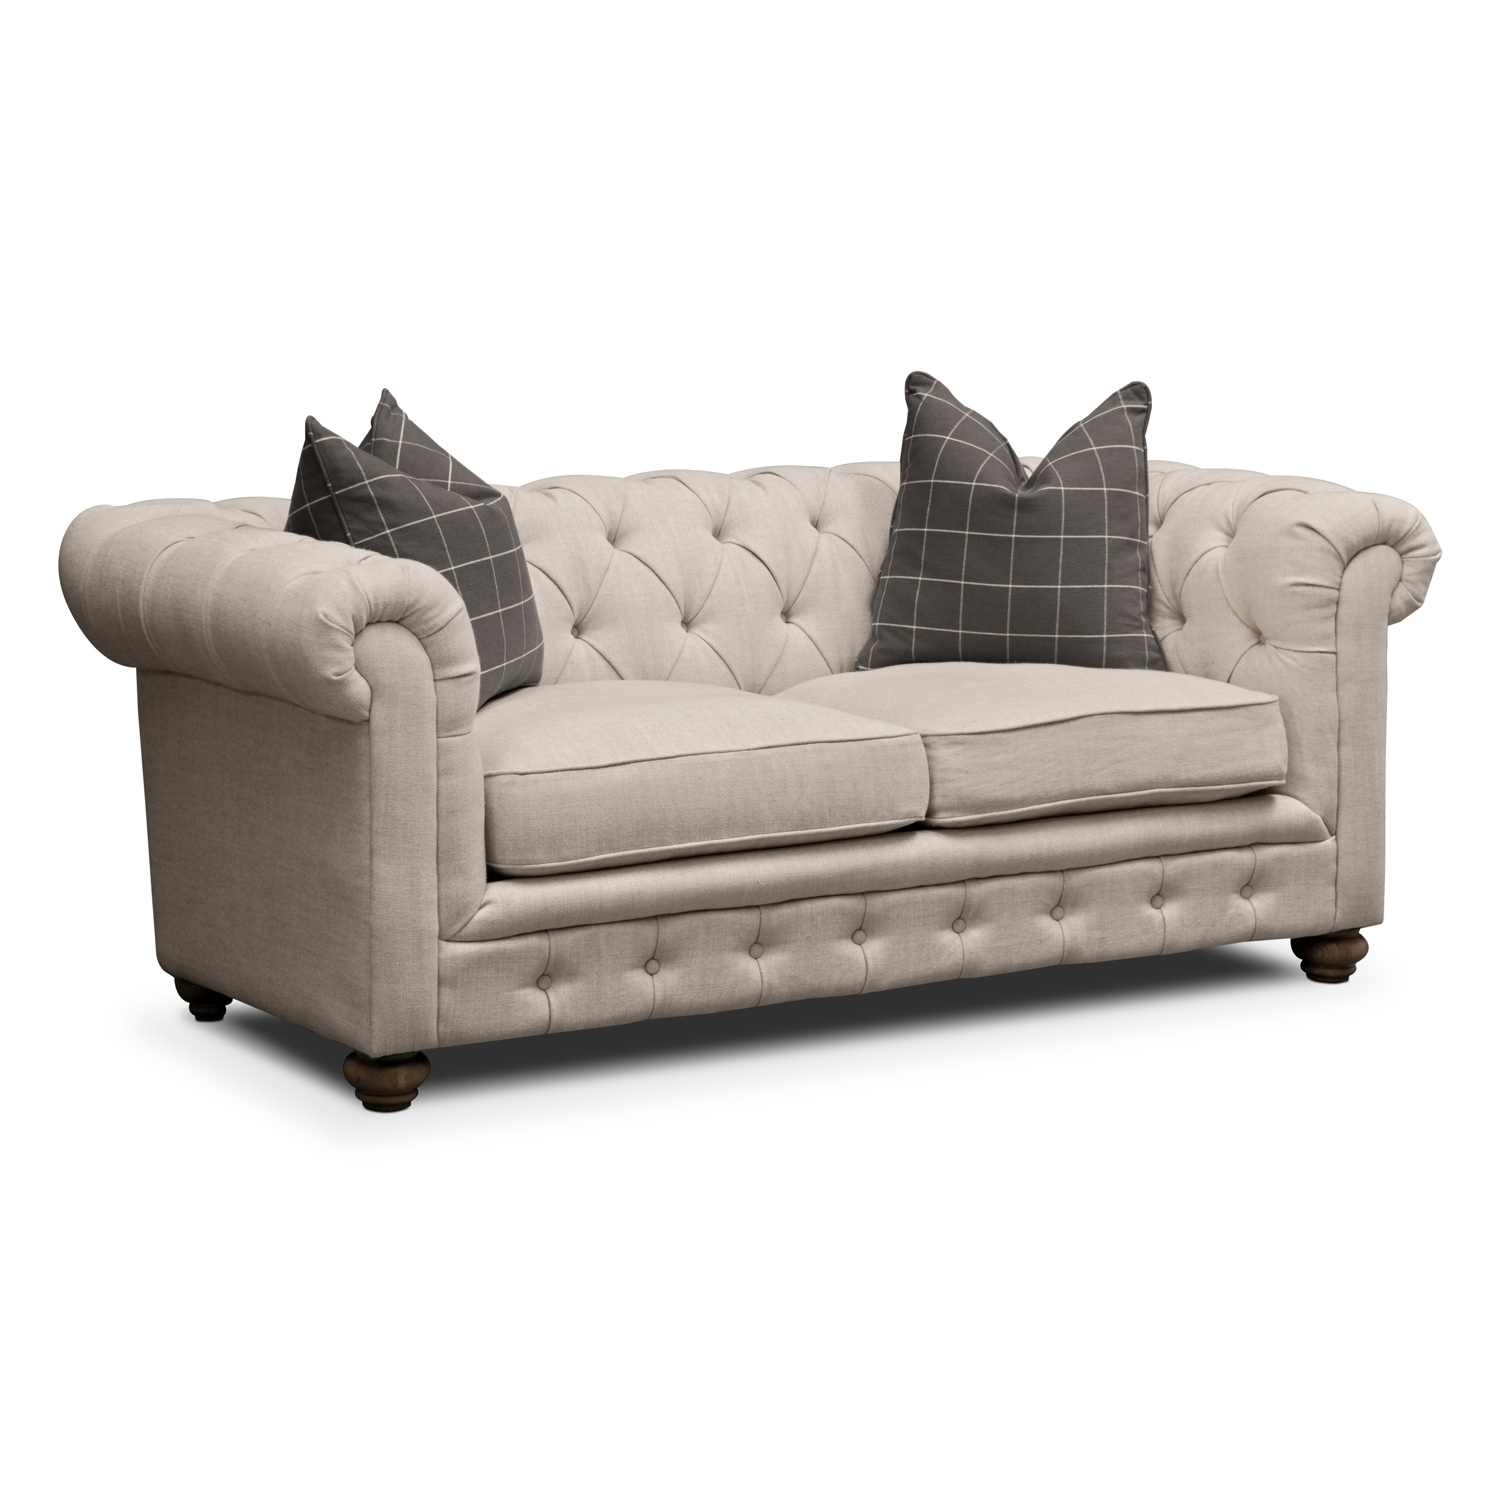 Madeline Apartment Sofa - Beige